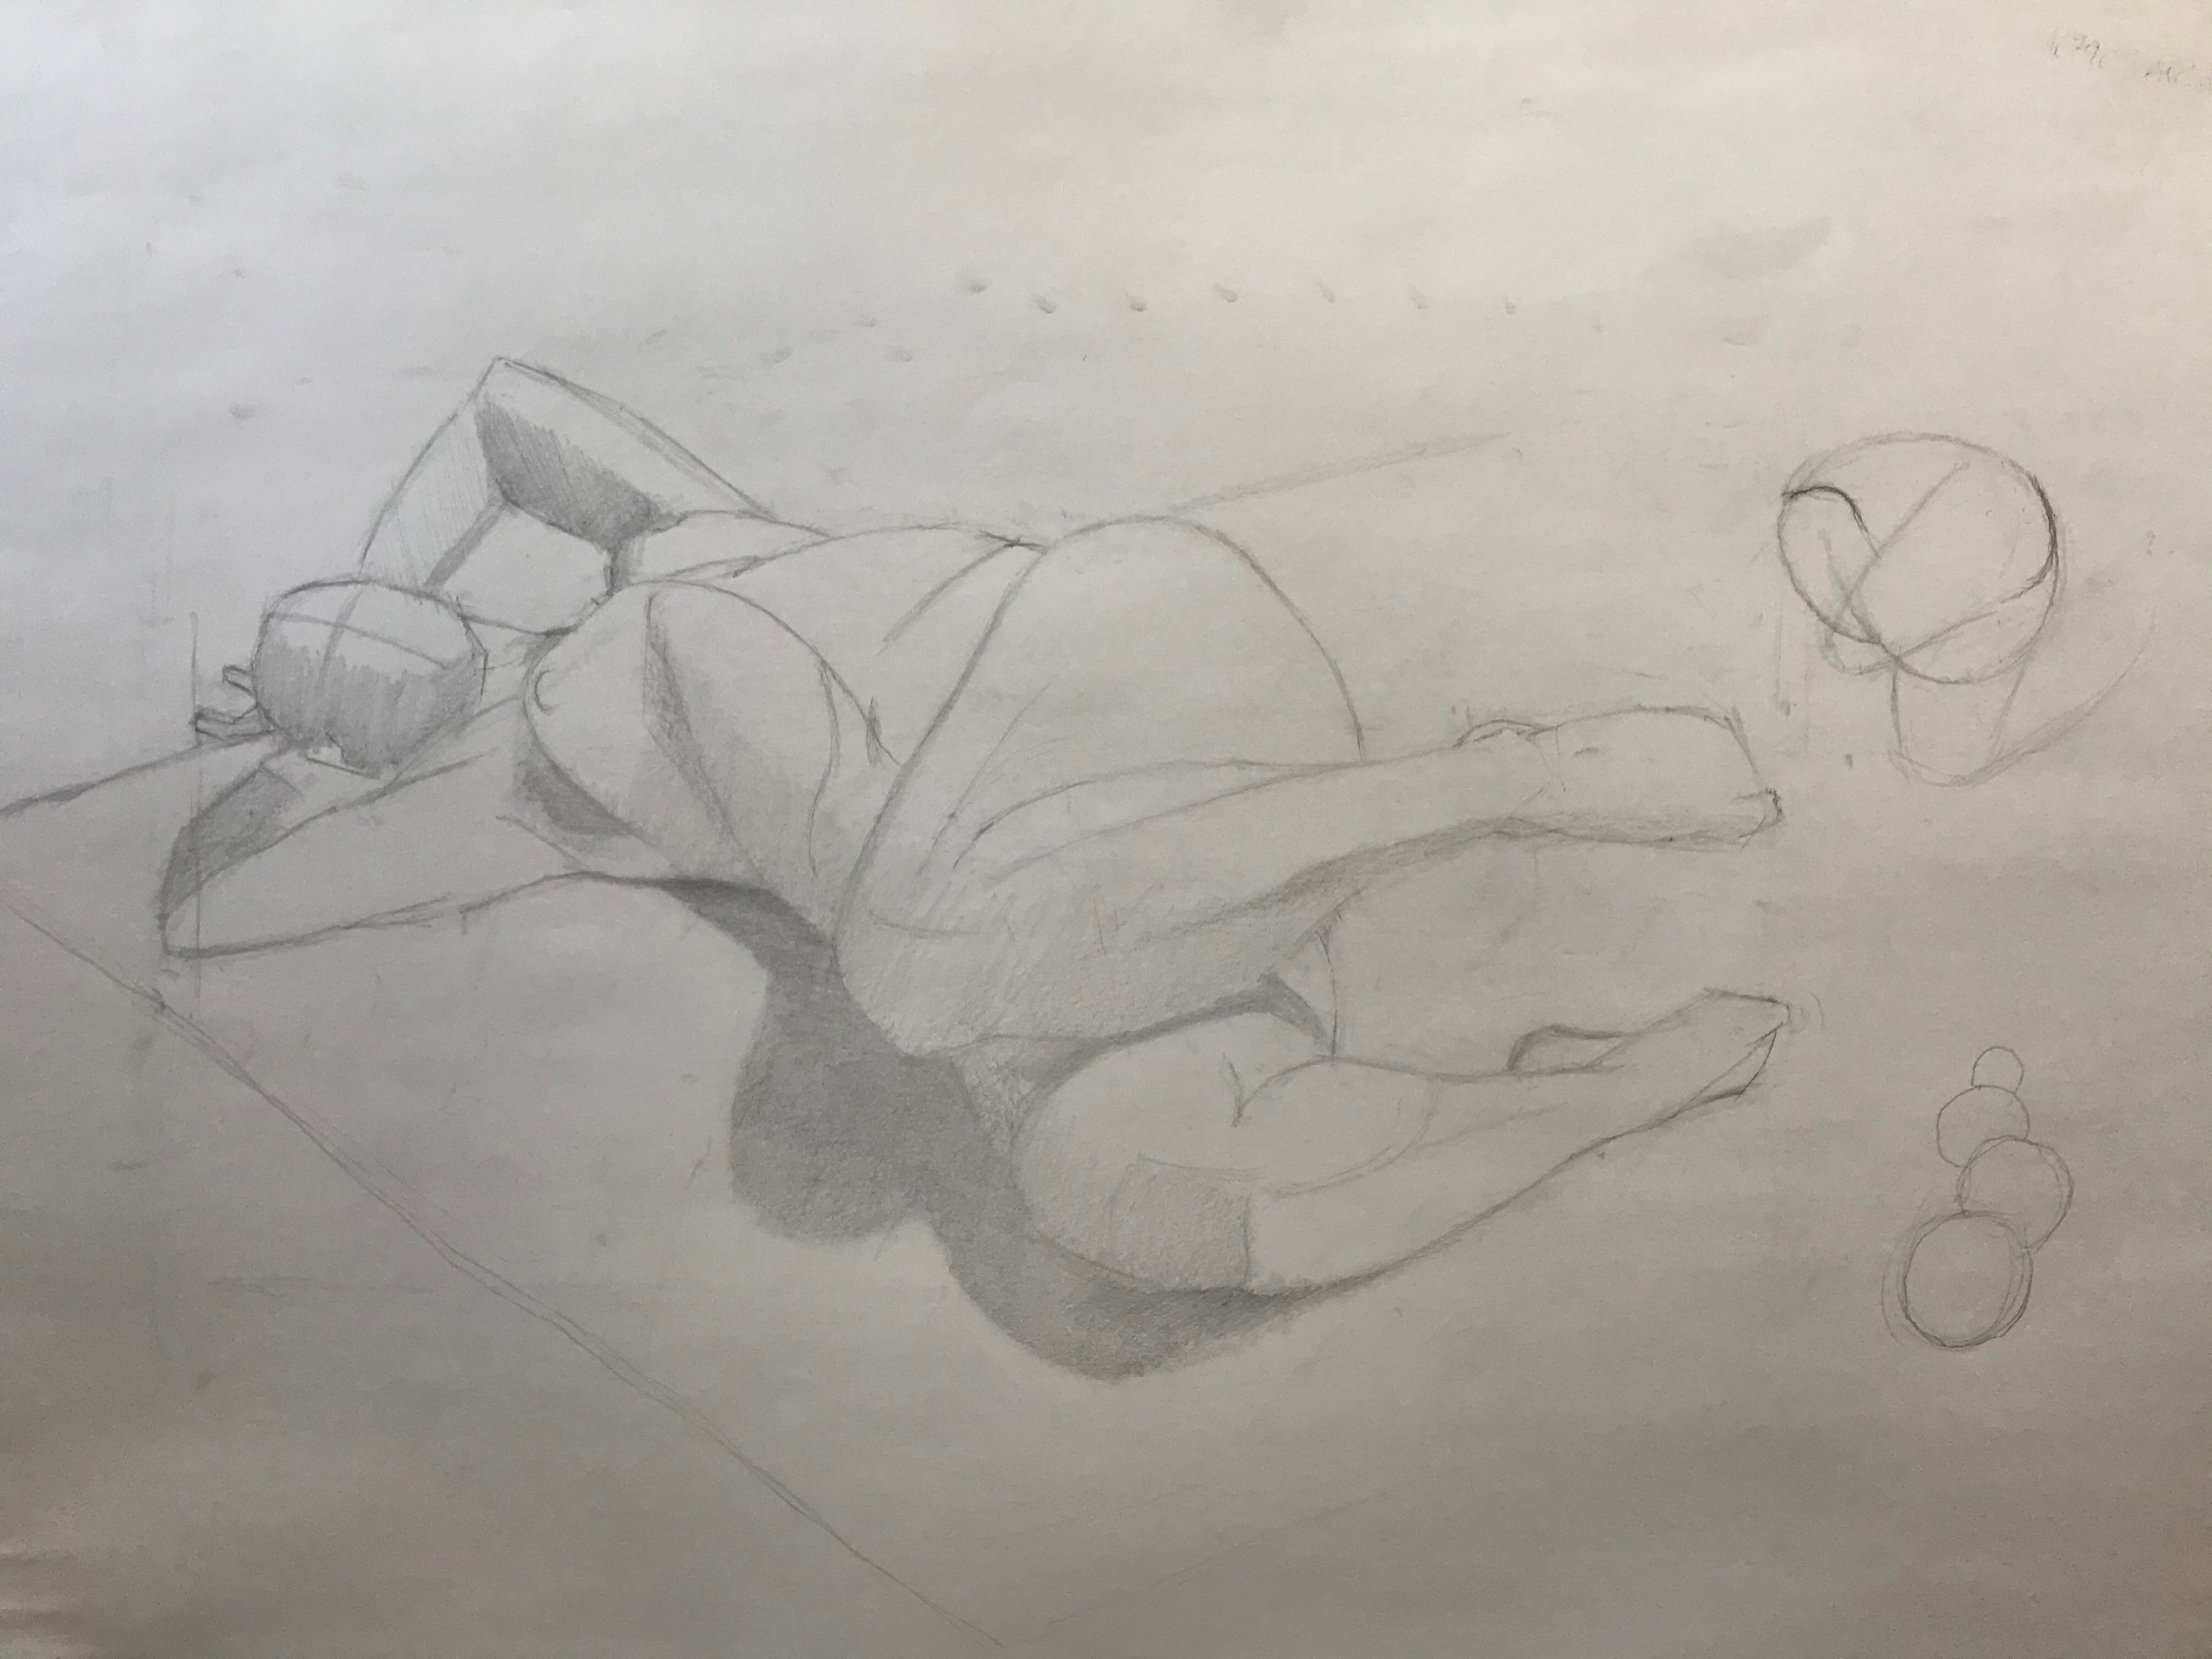 Constructive Figure Drawing